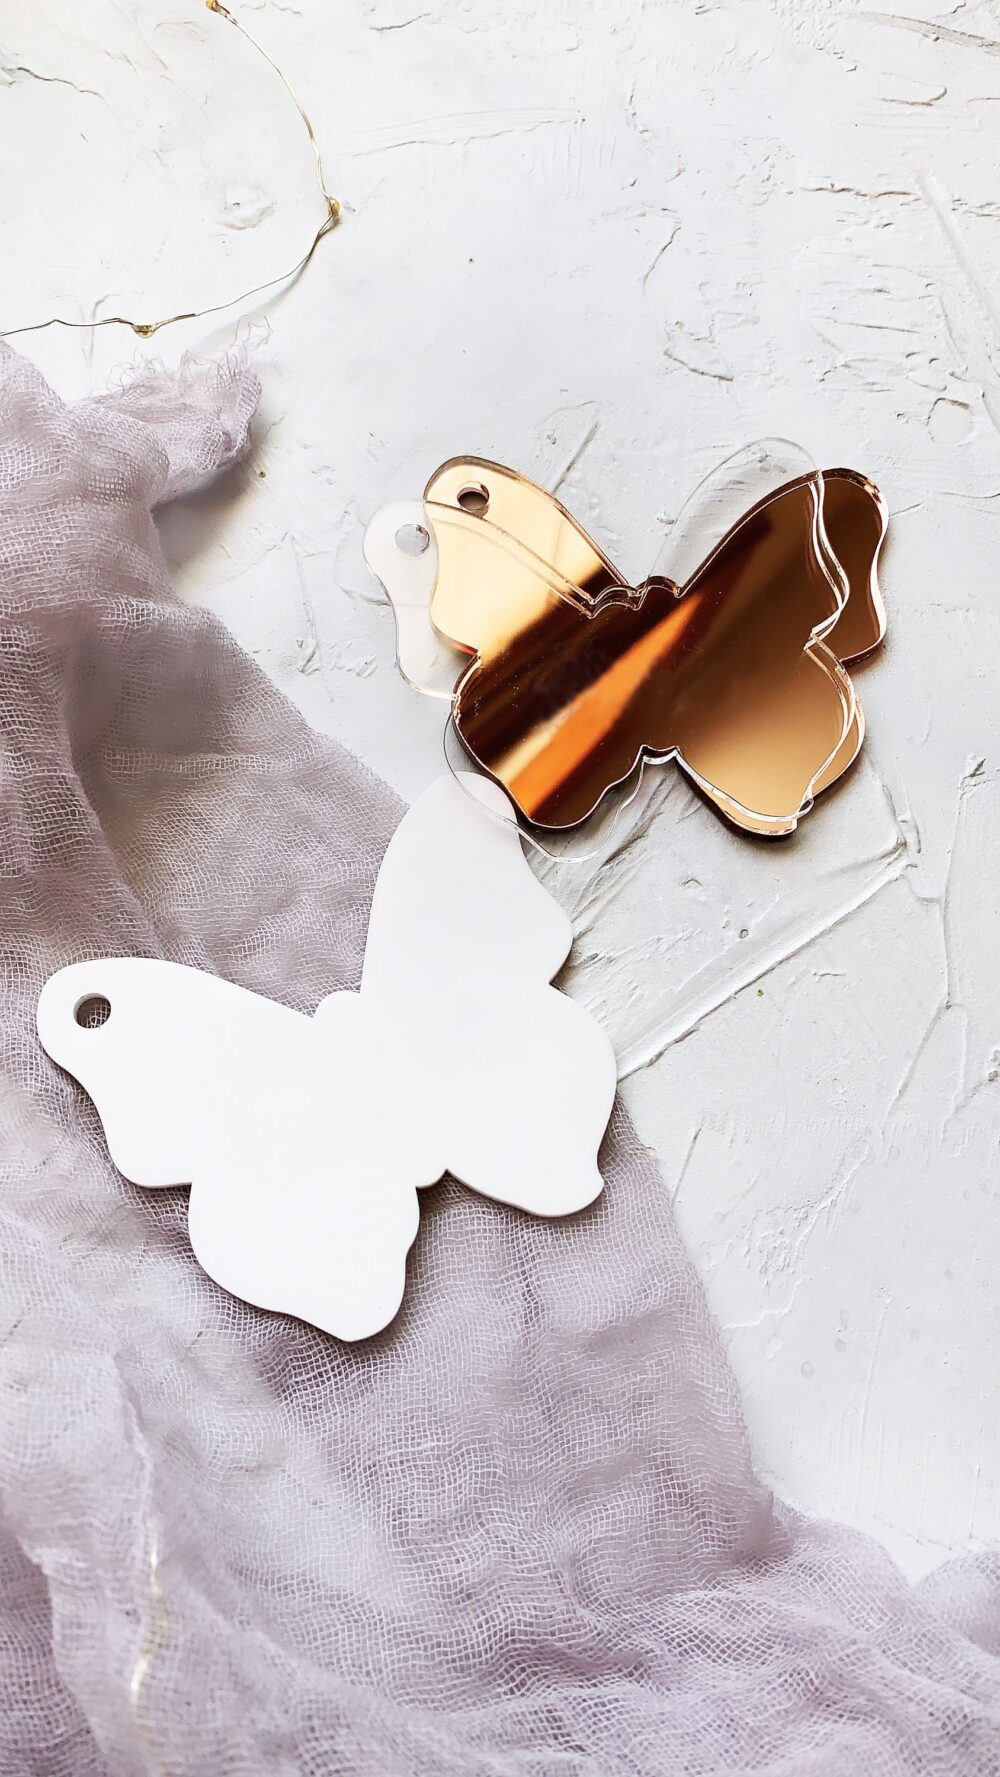 Blank Acrylic Butterfly Ornament Gift Tag - Place Card Name Silver Plate Mirror